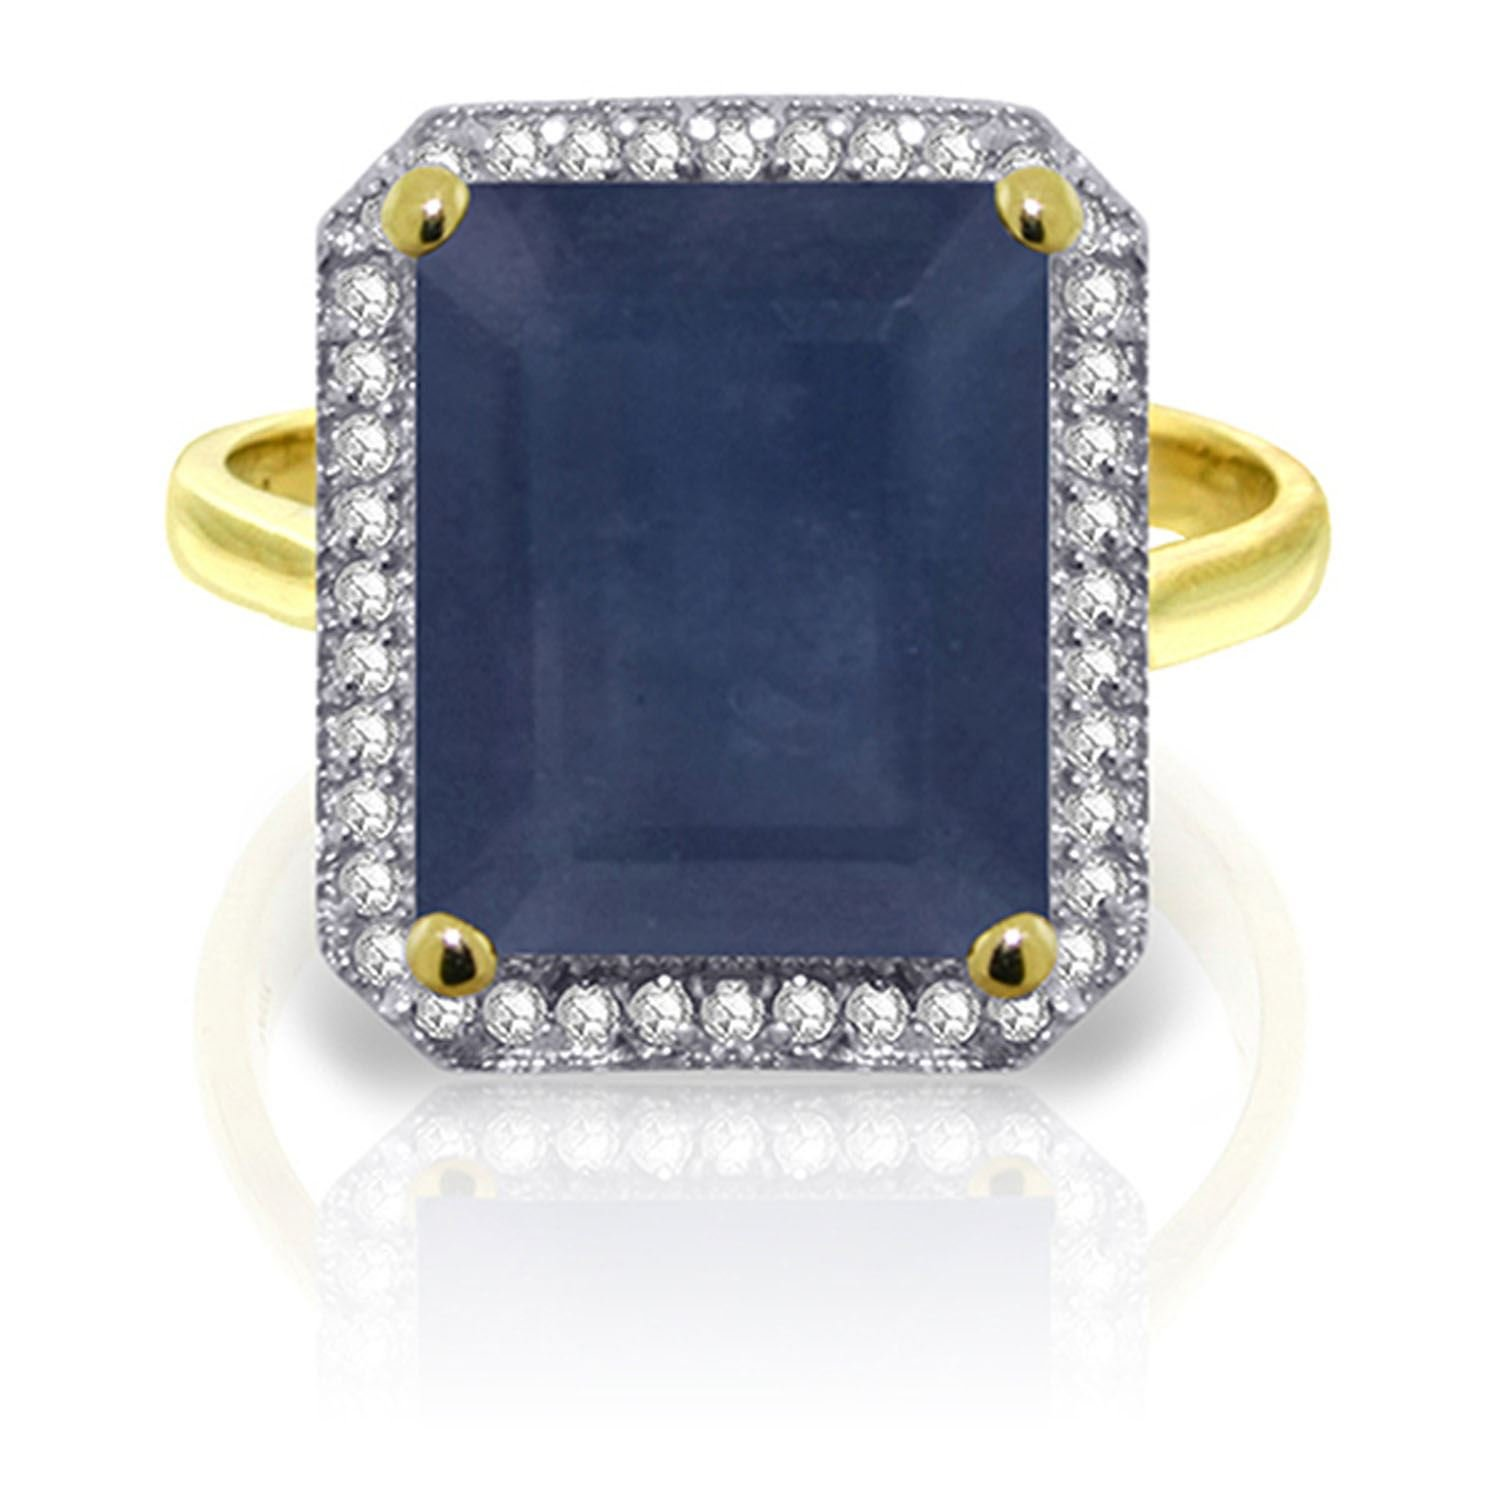 ALARRI 6.6 CTW 14K Solid Gold Persued By Angels Sapphire Diamond Ring With Ring Size 11